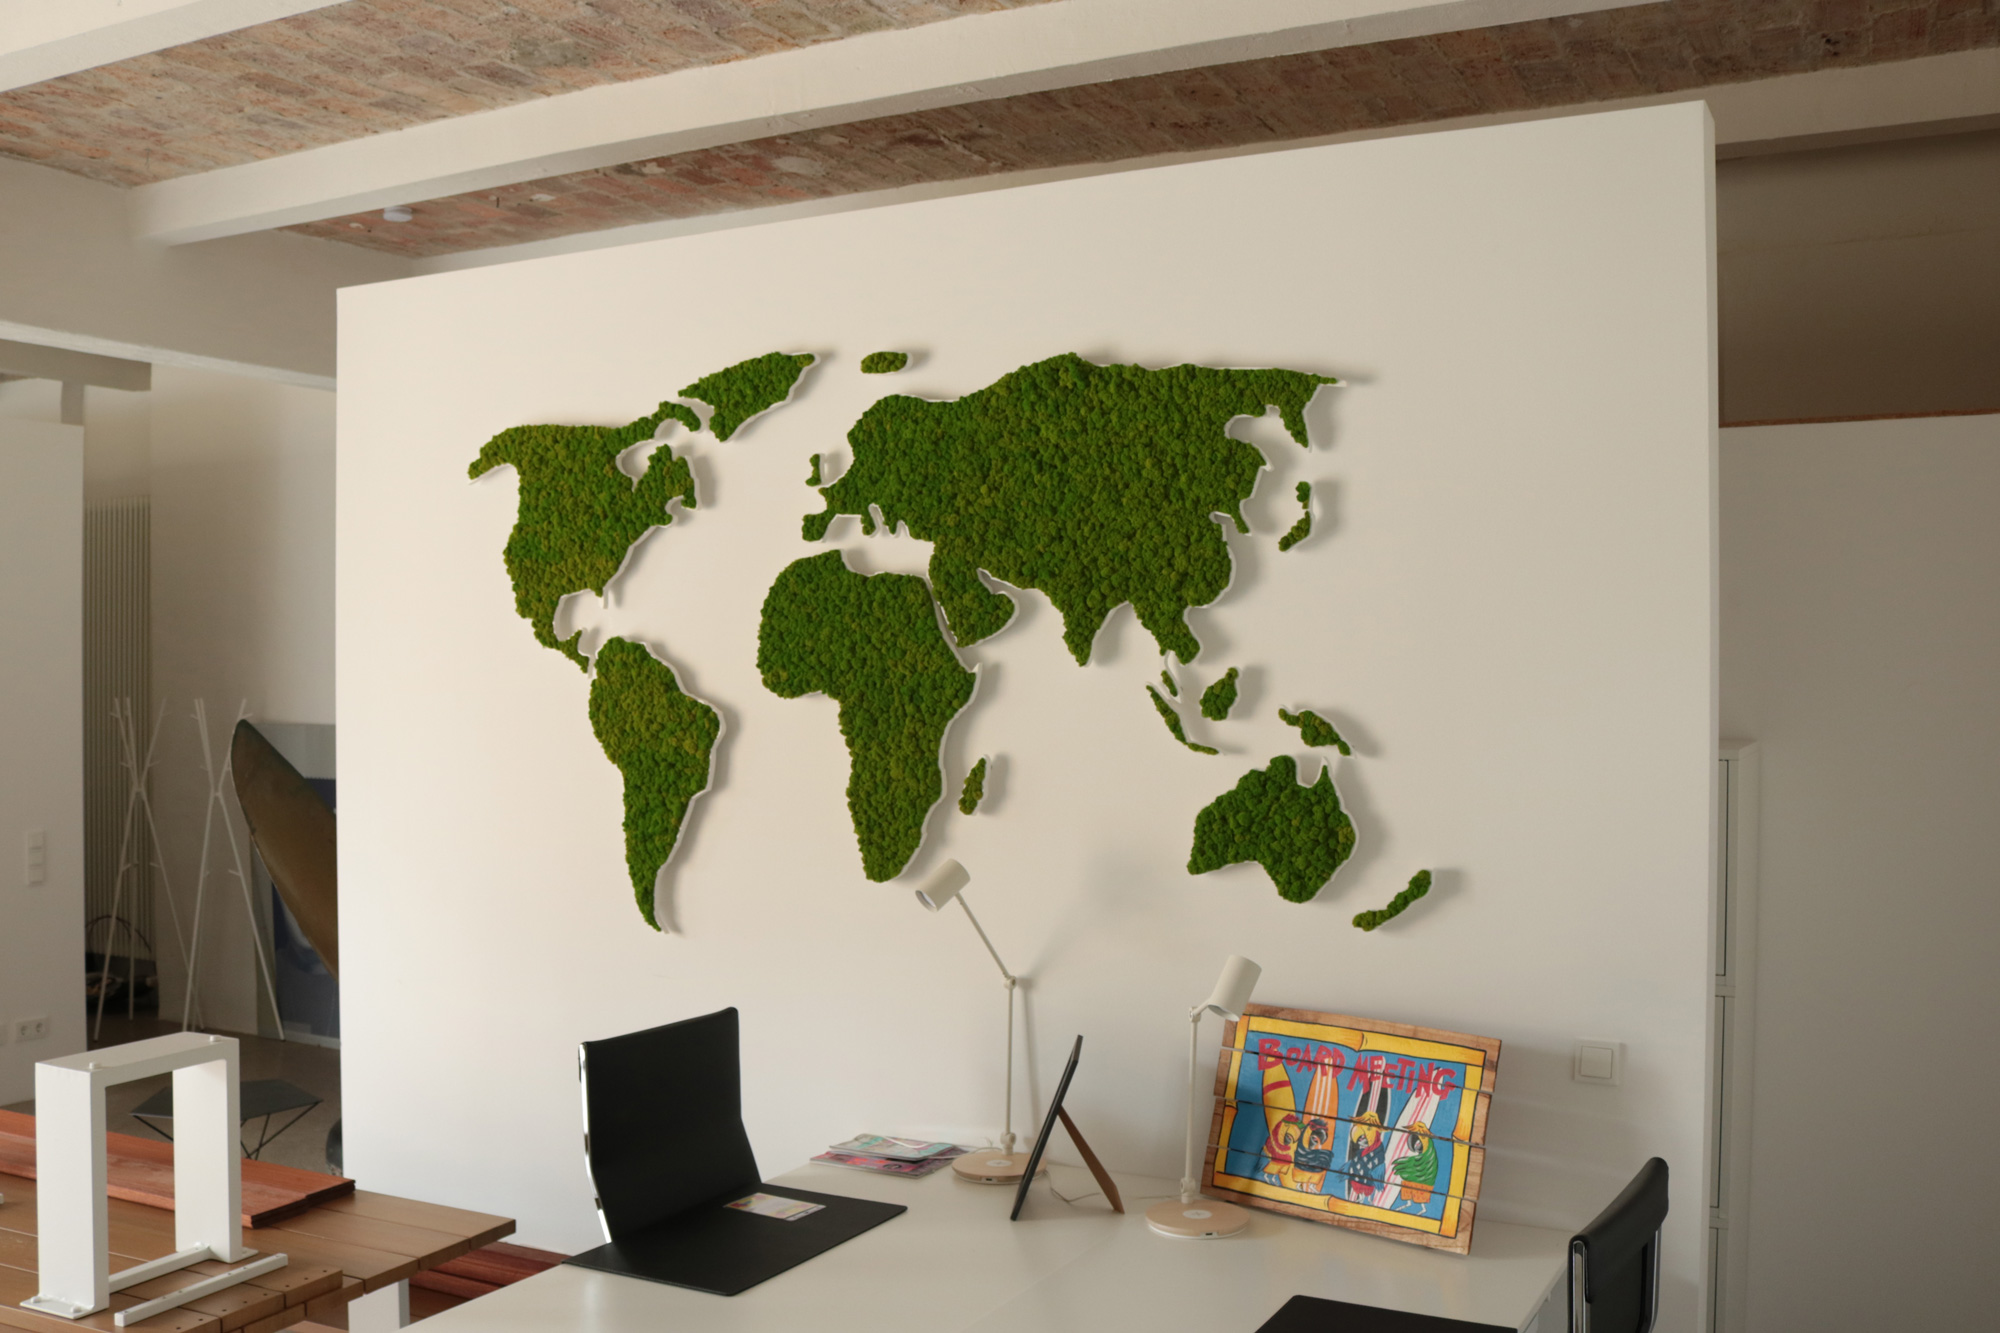 Moss wall with important message, moss map of the world, Evergreen Premium moss, Jugend gegen Aids